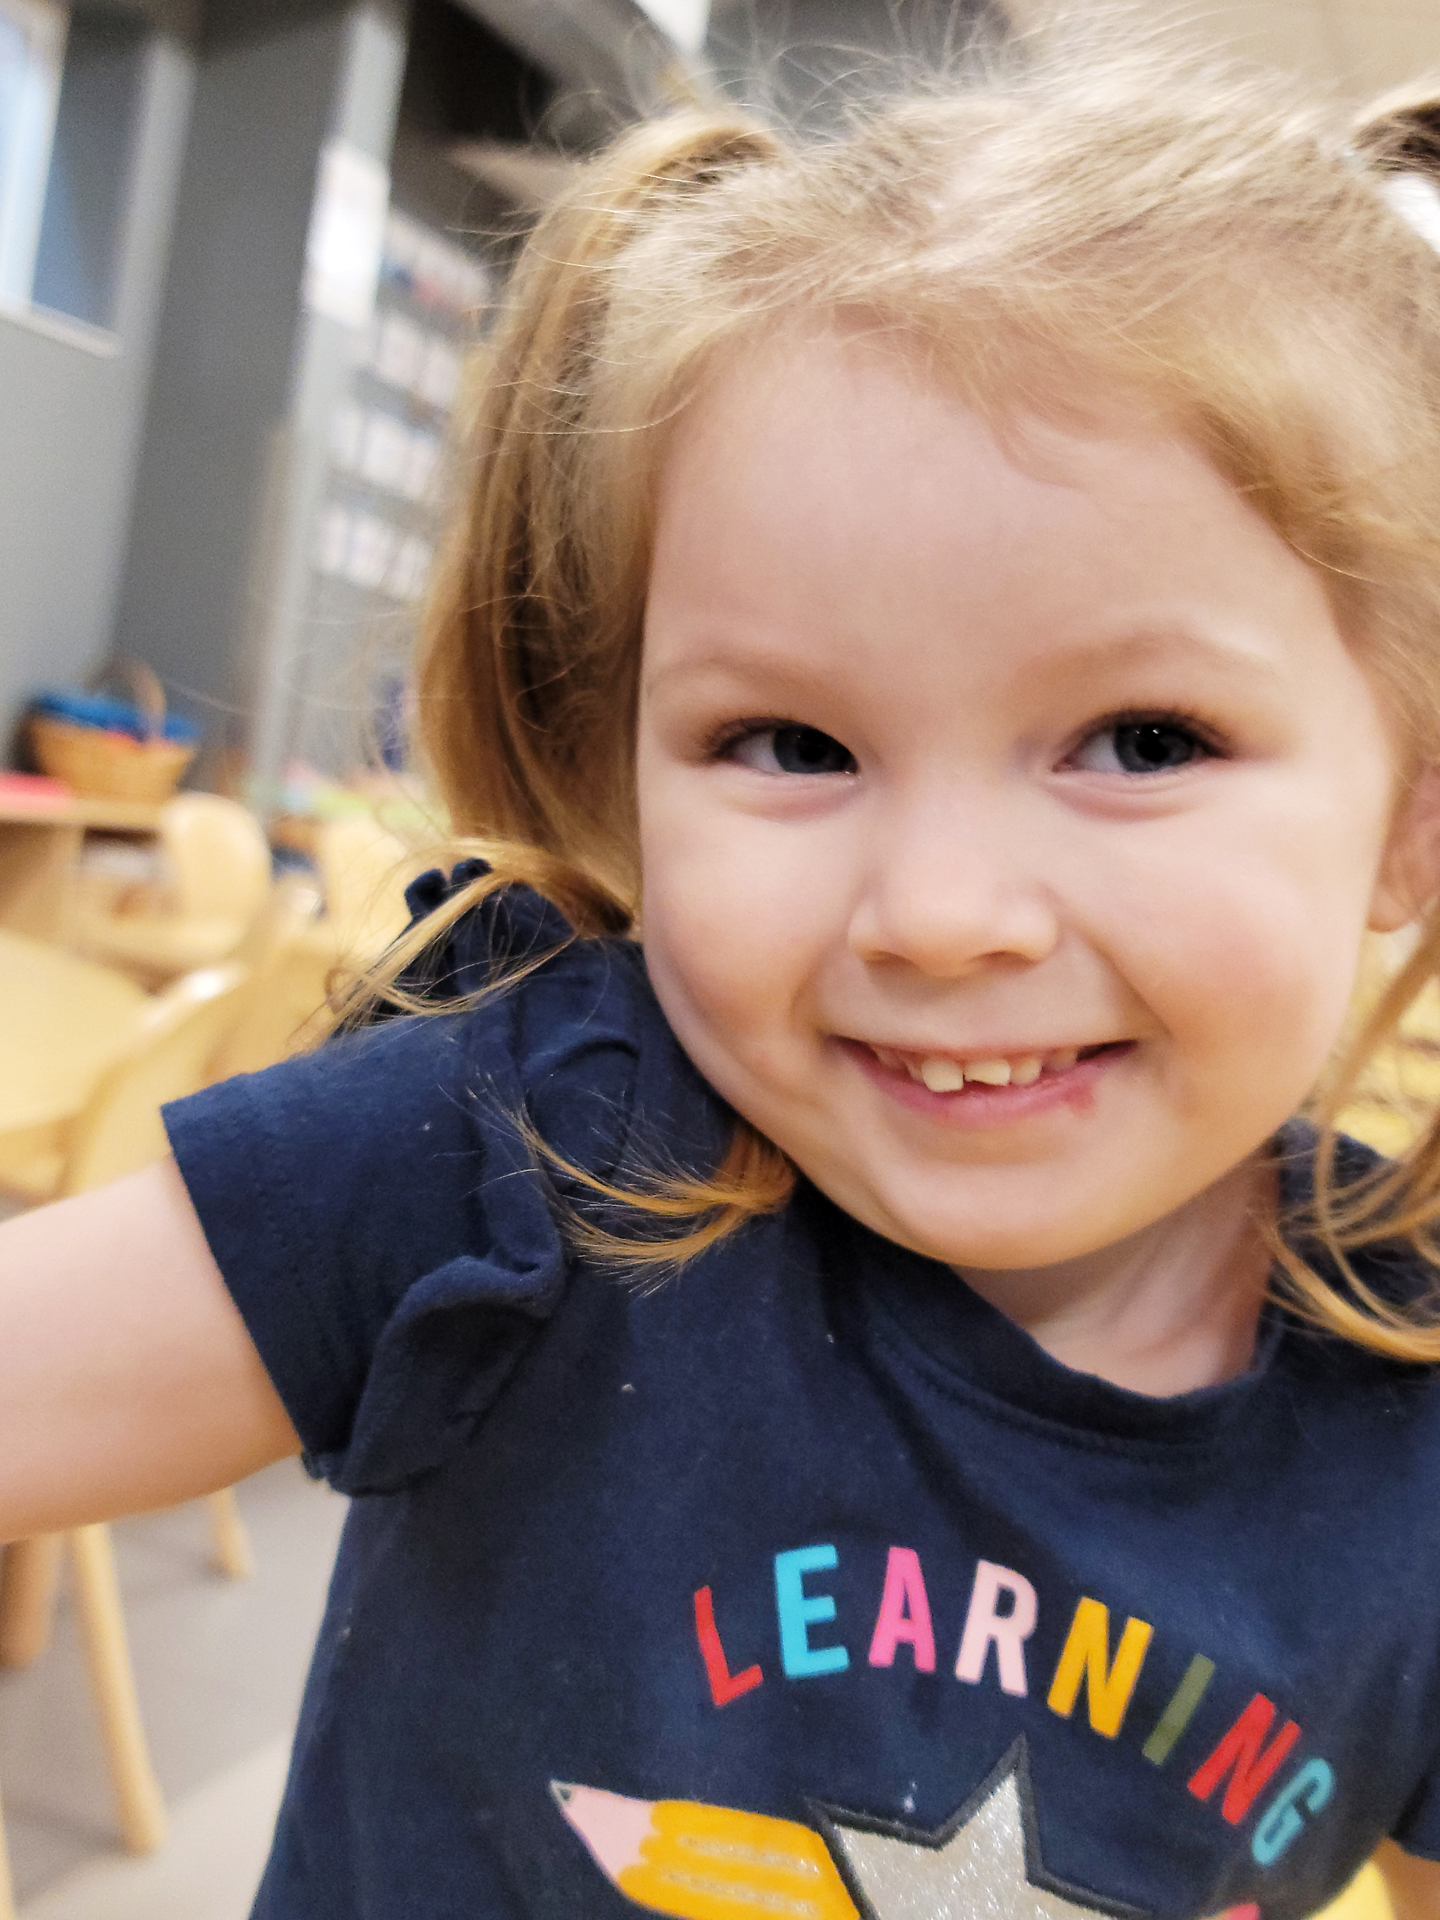 Register for Pre-K Counts - Lancaster City Early Education - Free for Eligible families Lancaster Early Education Center formerly Lancaster Day Care Center Quality early care & education since 1915.